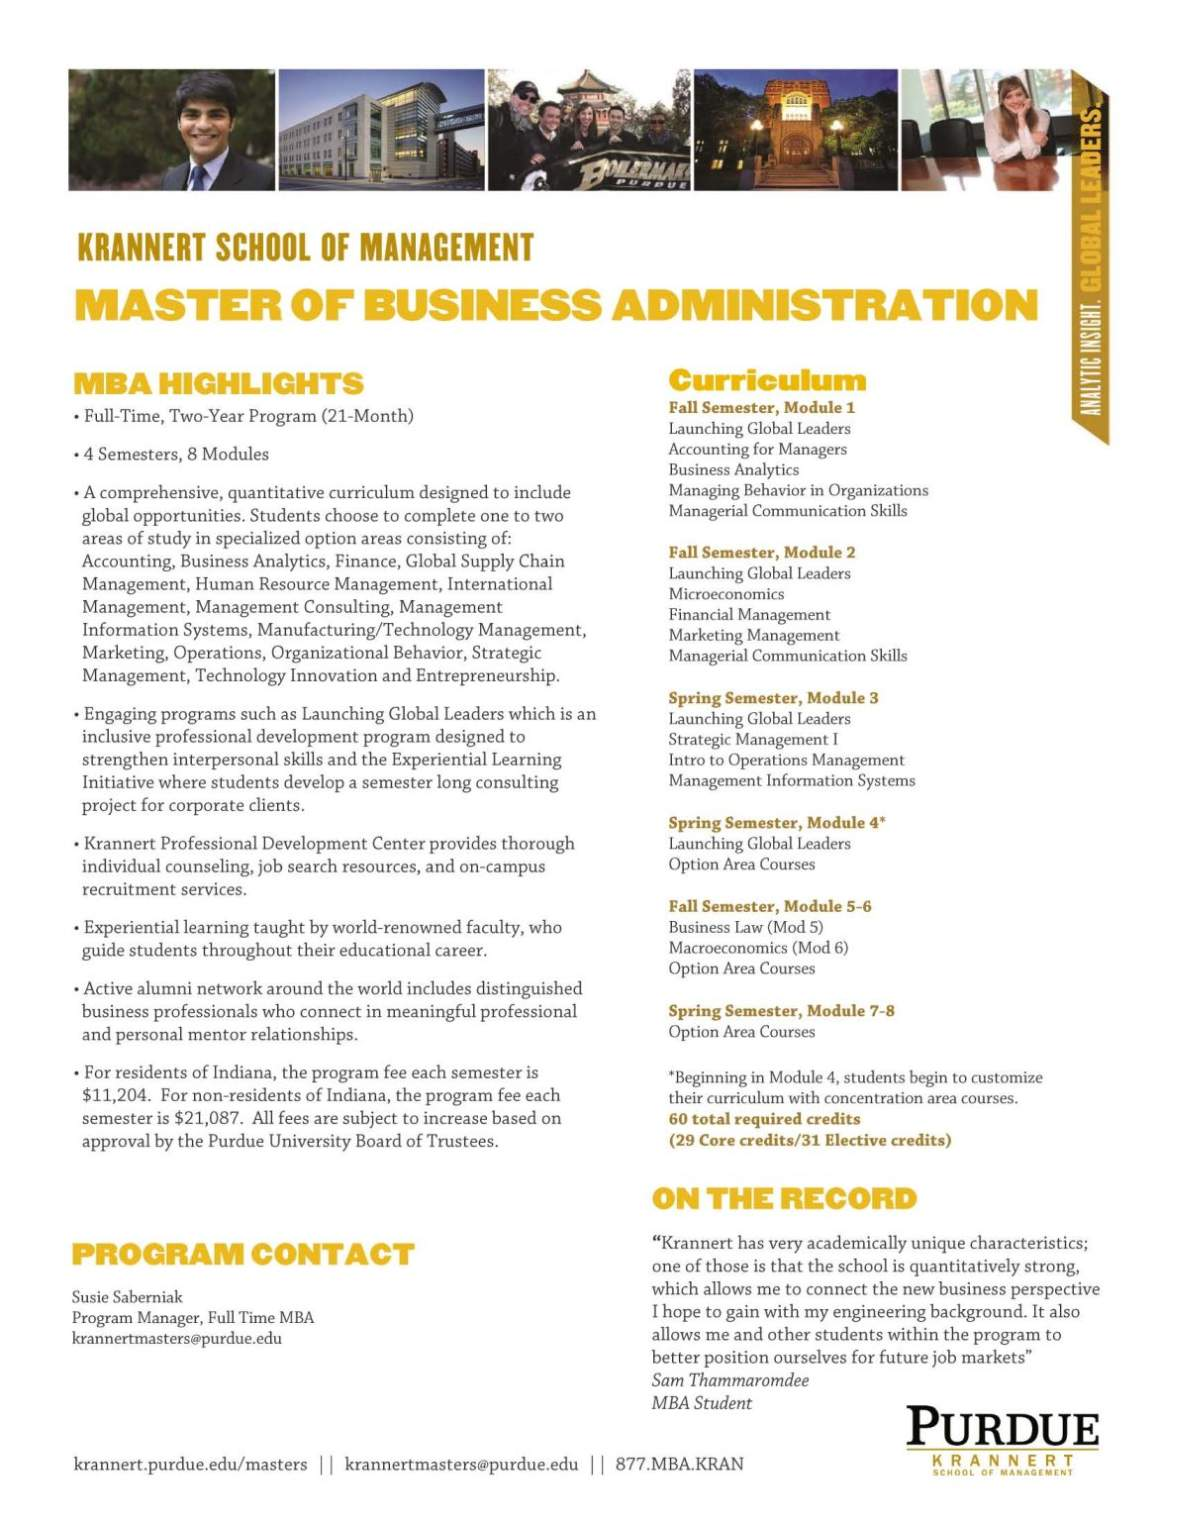 indiana mba essays Essay questions kelley indiana mba essays 2014-2015 kelley indiana essay 1 please discuss your immediate post-mba professional goals how will your professional experience, when combined with a kelley mba degree, allow you to achieve these goals.